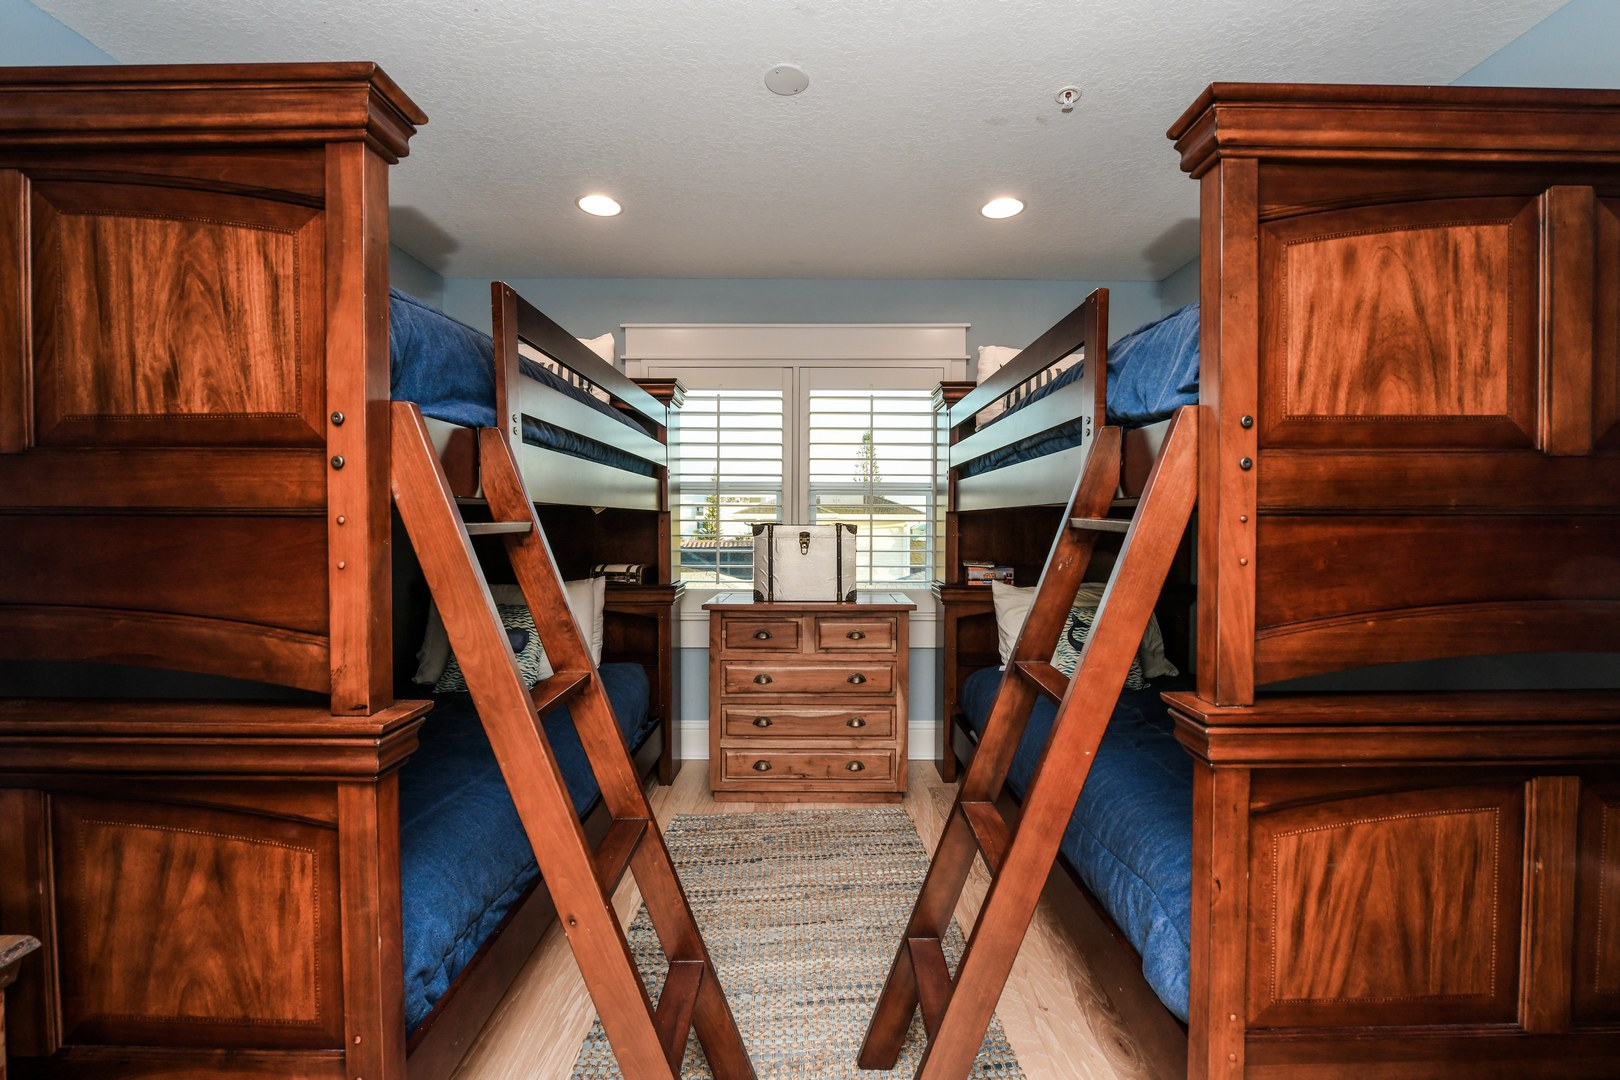 2nd Bunk Room - 2 Sets of Twin Bunk Beds